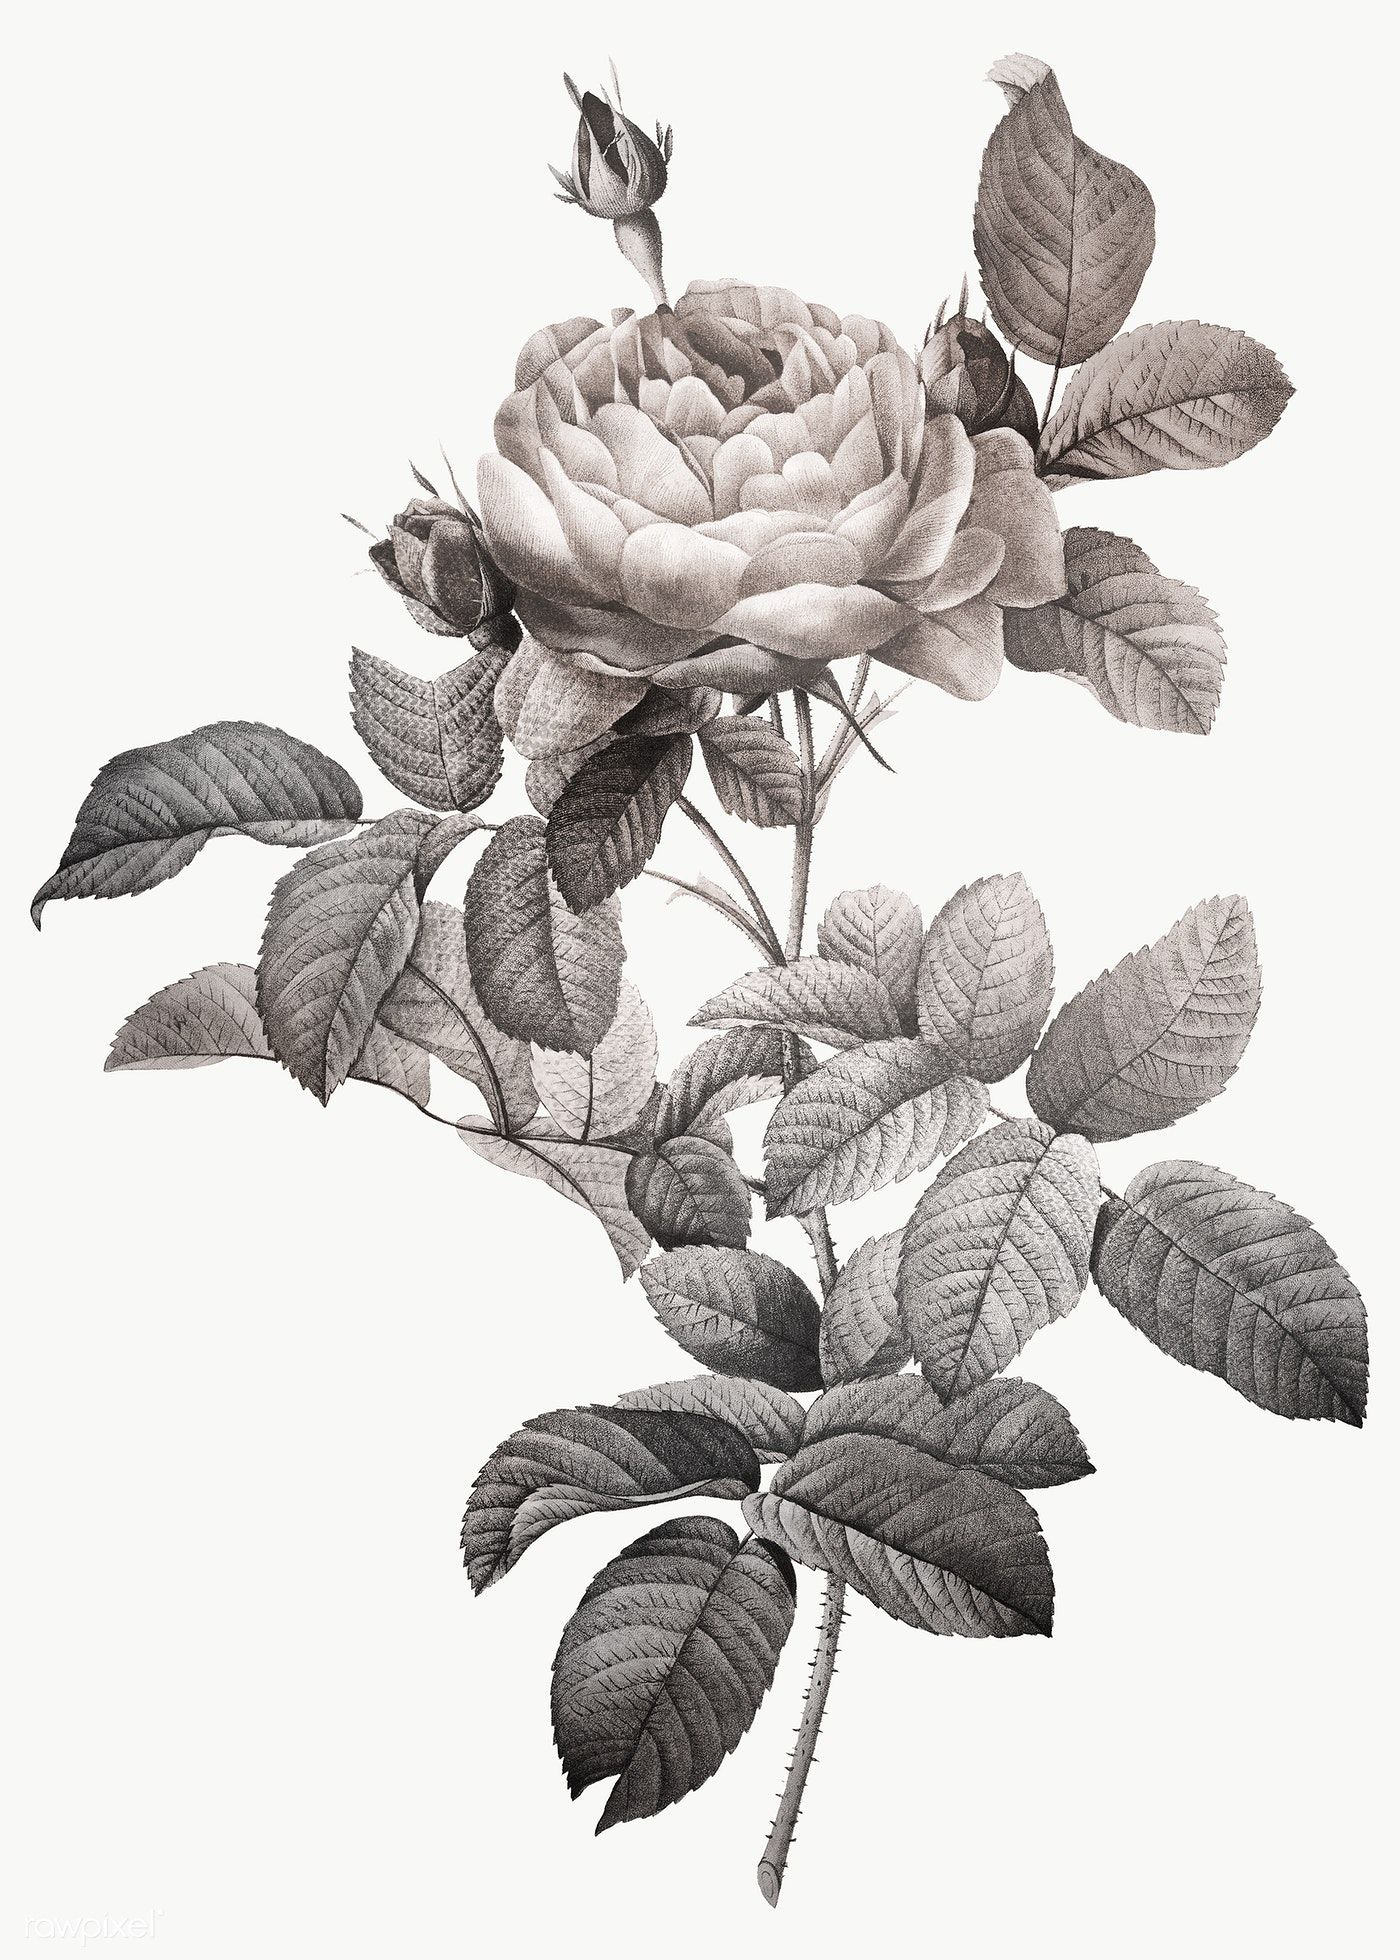 Gray Rose Vintage Illustration Transparent Png Design Remix From Original Artwork By Pierre Joseph Redout E In 2020 Rose Illustration Vintage Illustration Illustration